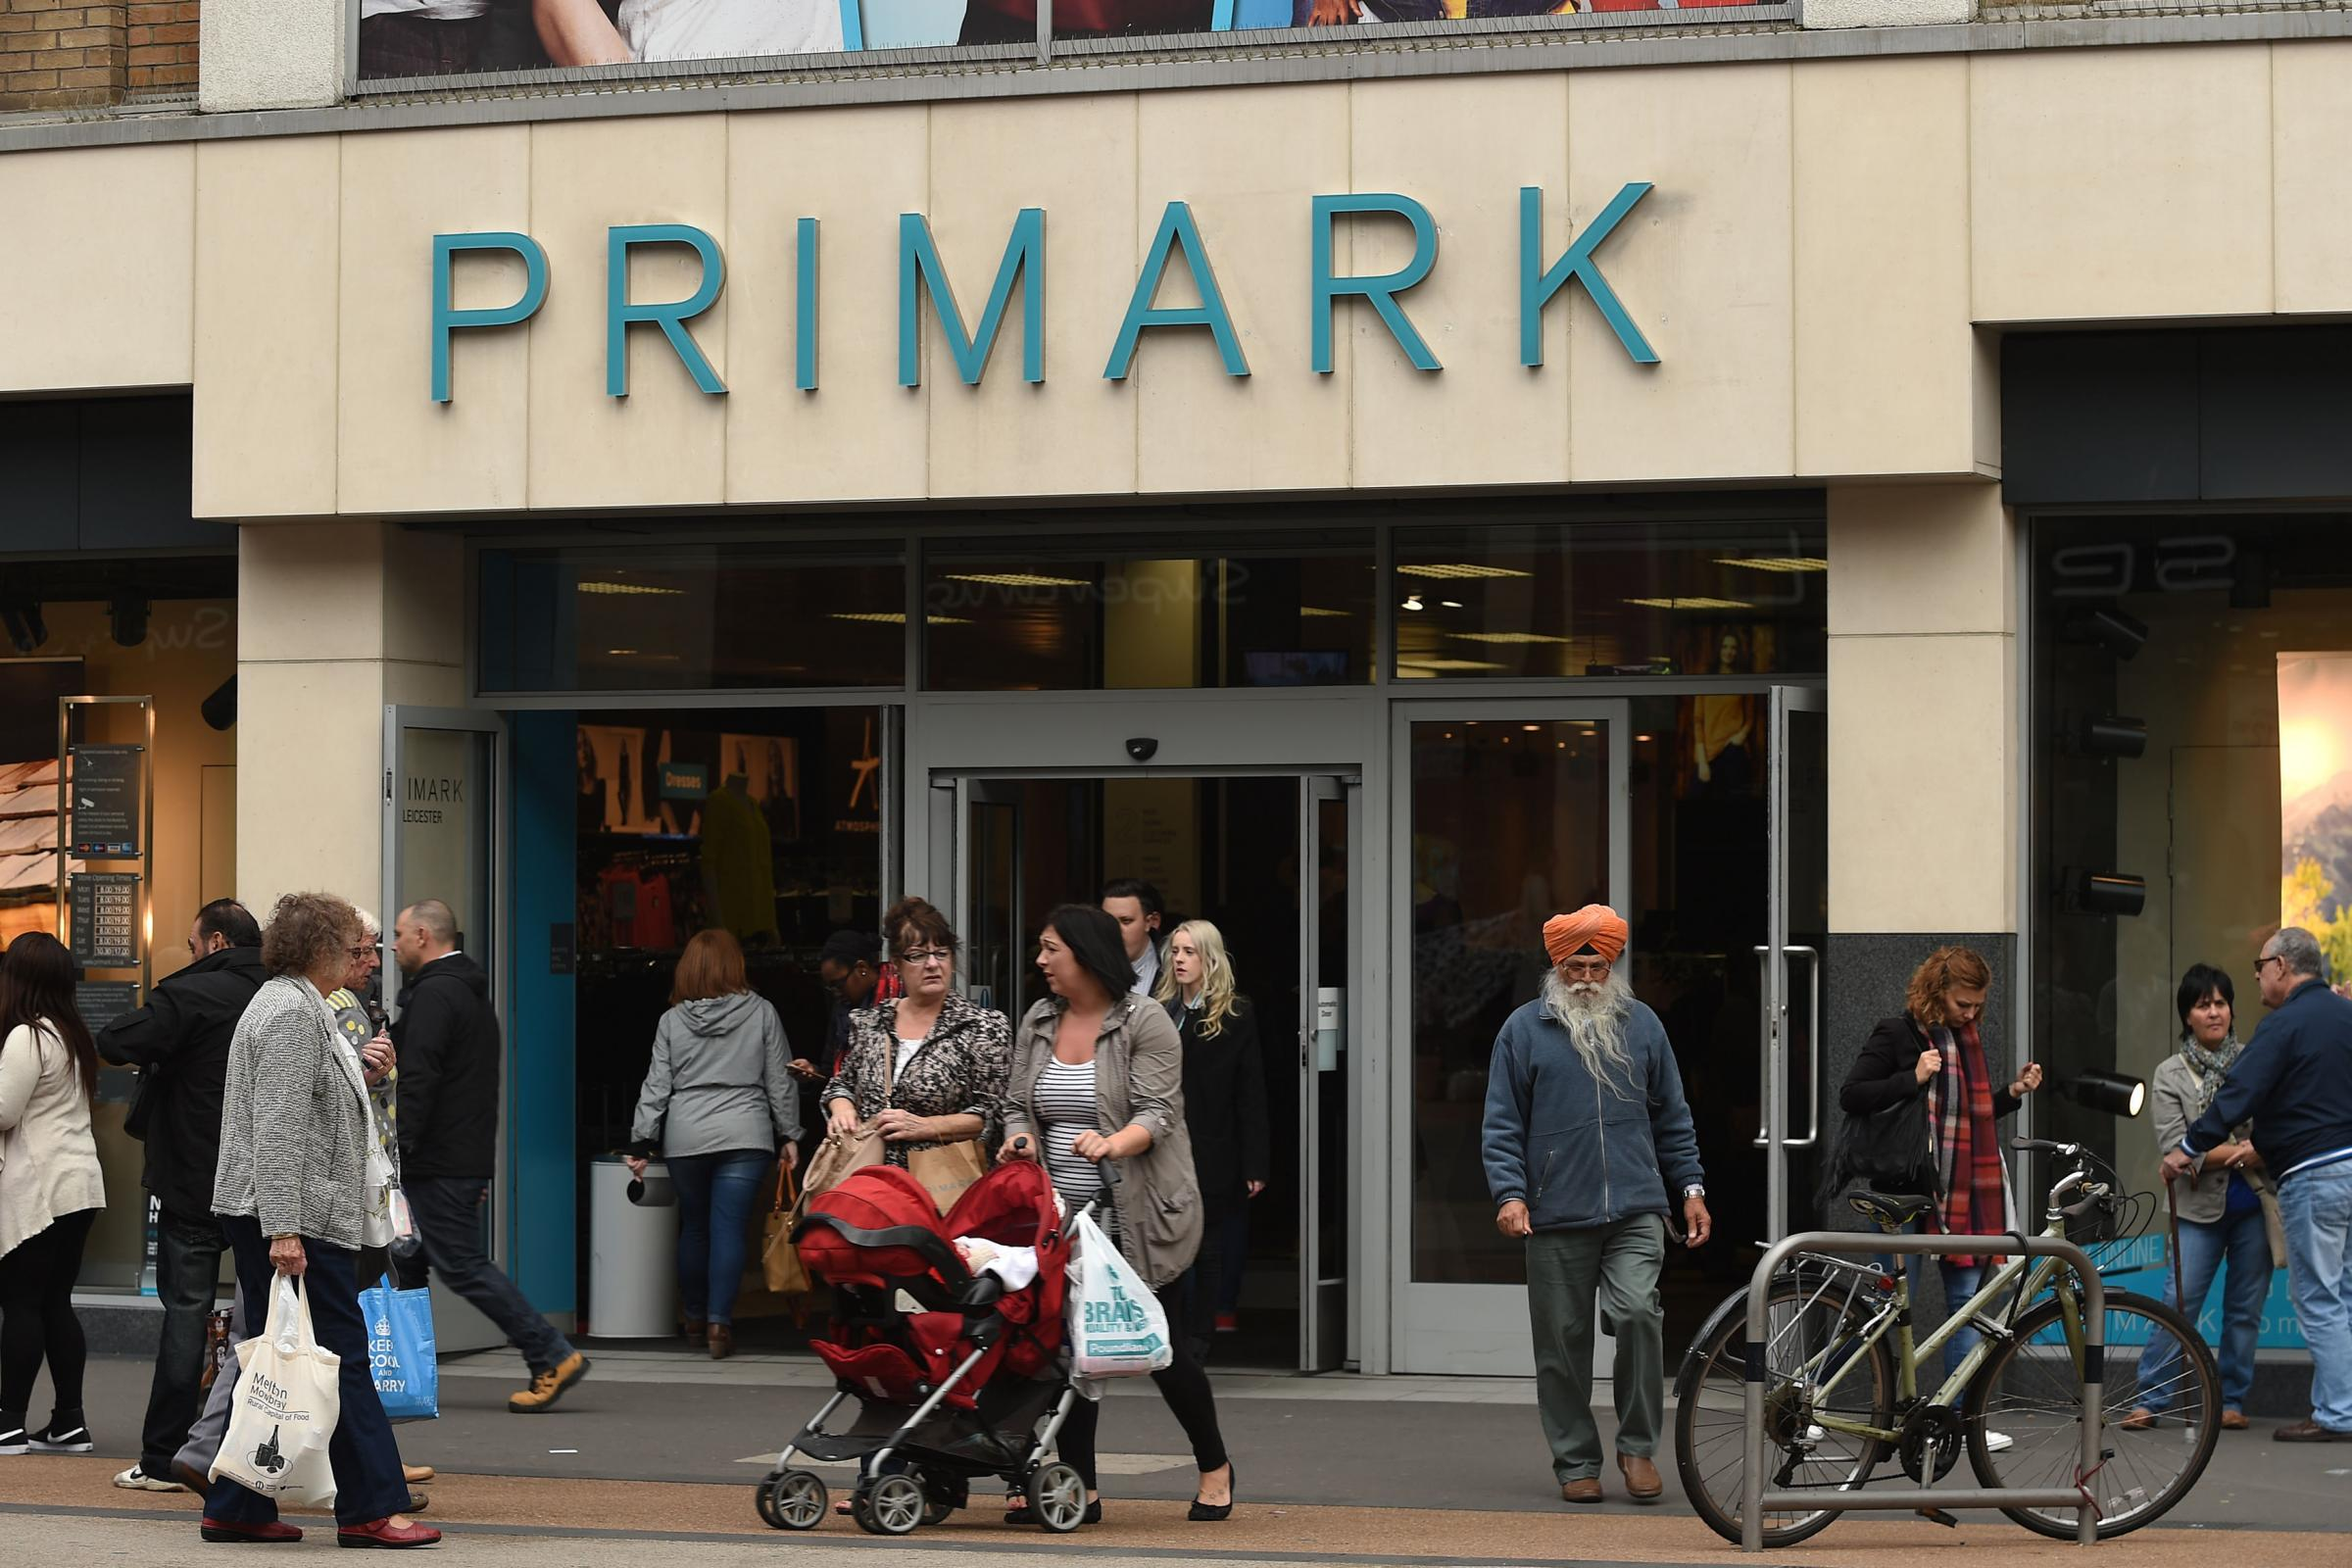 Primark to close all UK stores after drop in demand during coronavirus pandemic